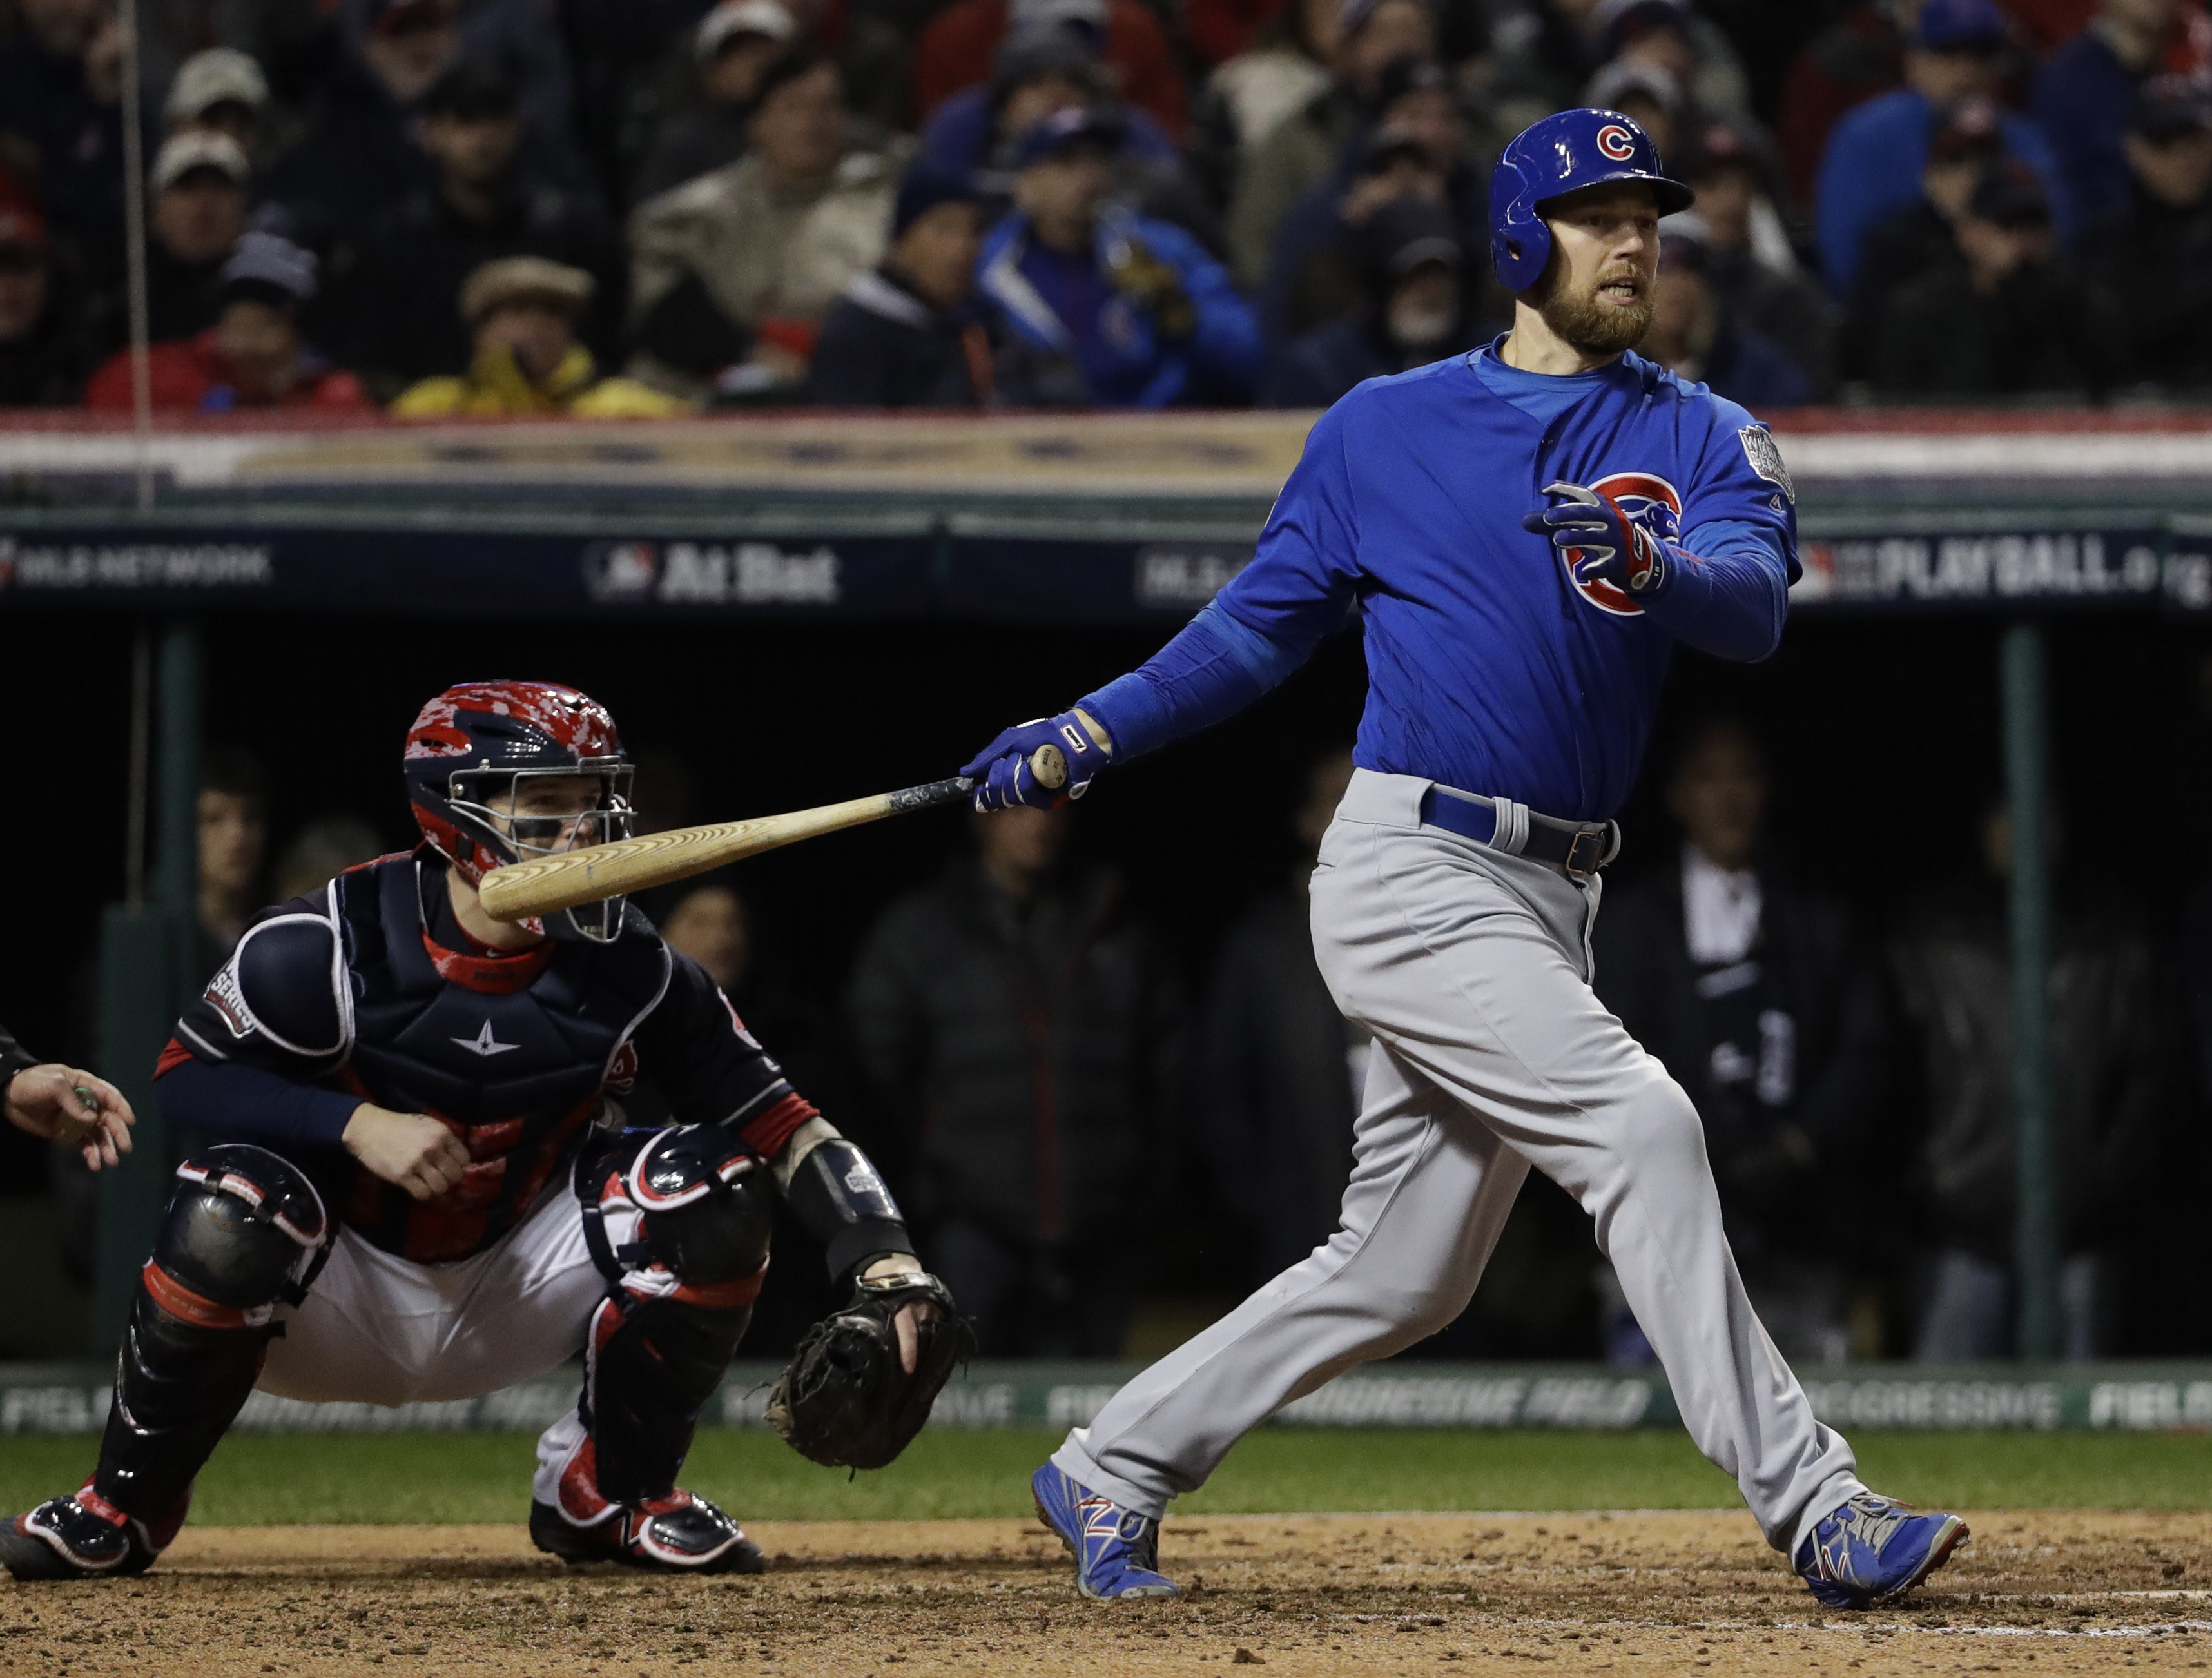 24c55c7a1 CLEVELAND (AP) — Nothing scares these Chicago Cubs. Not the stakes, the  weight of history, a tough night at the plate or the prospect of going down  two ...